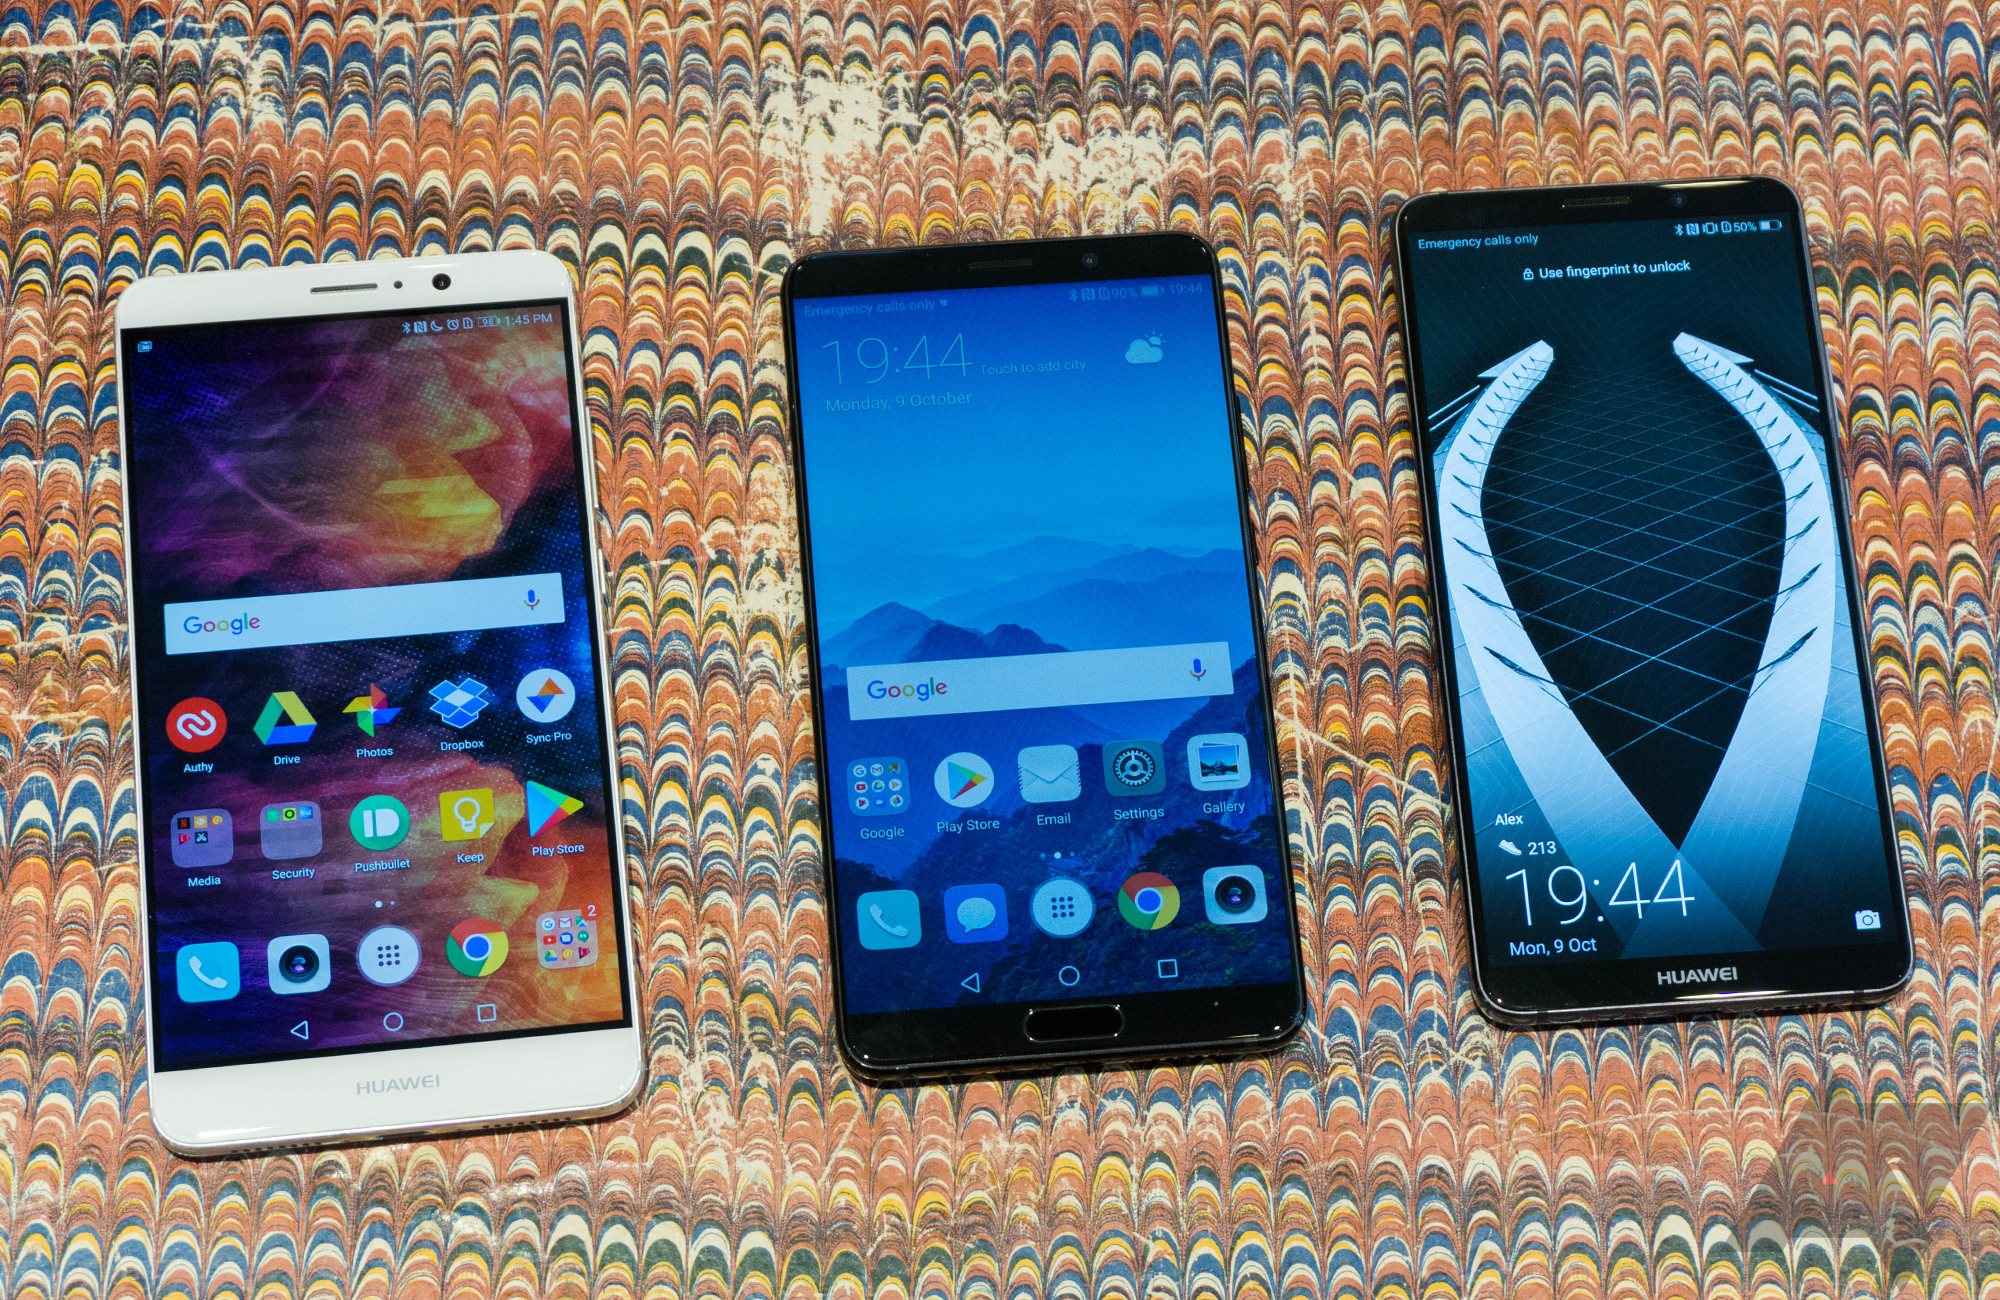 Hands-on with the Huawei Mate 10 and Mate 10 Pro: Plugged into the